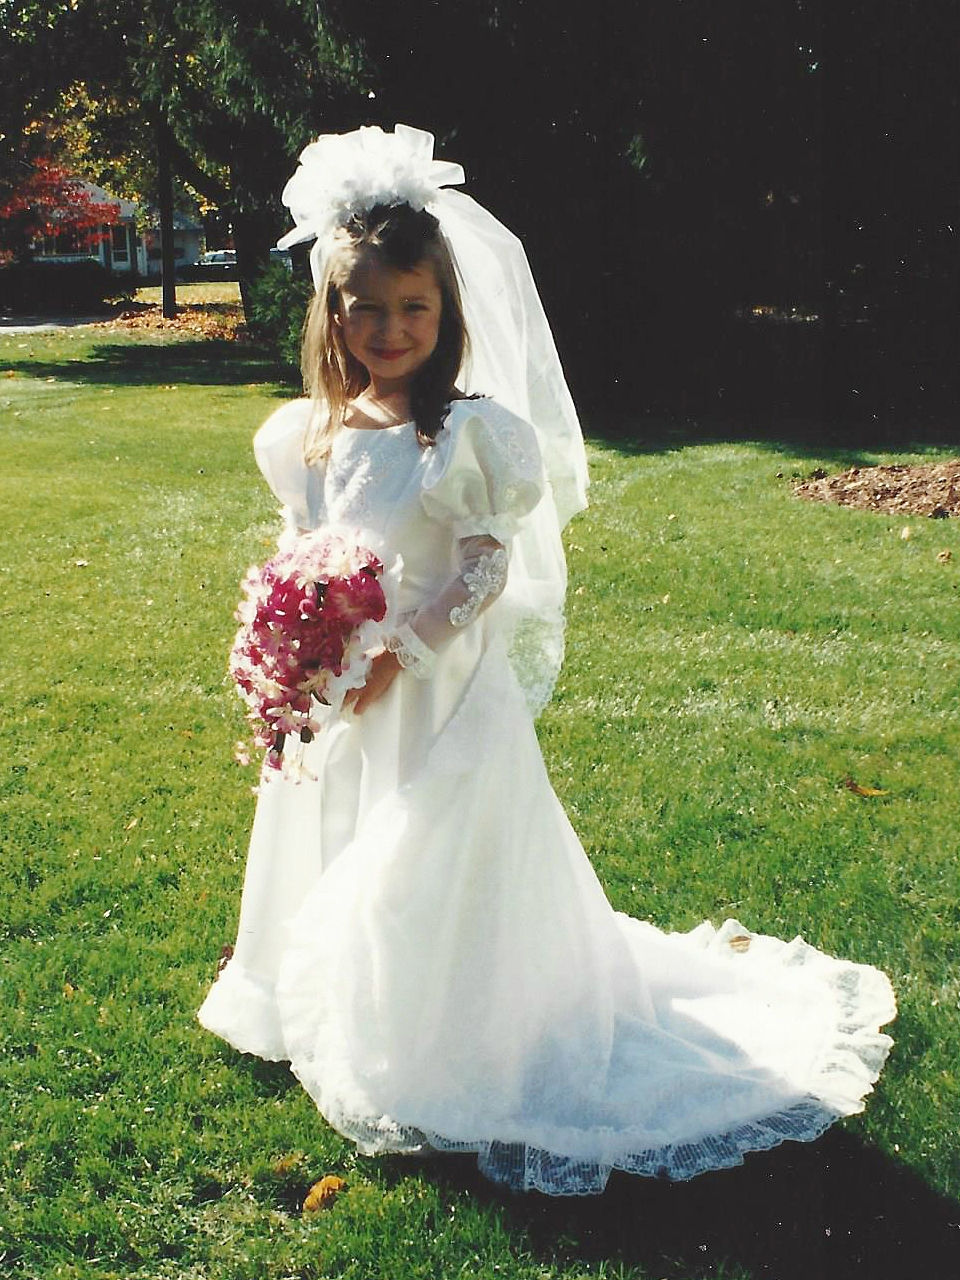 Halloween was always hand-designed in the Hunt house. Brielle, at 5 years old, in her wedding gown costume with a dreamy lace train, puffy satin sleeves, and cascading bouquet....every little girl's dream!